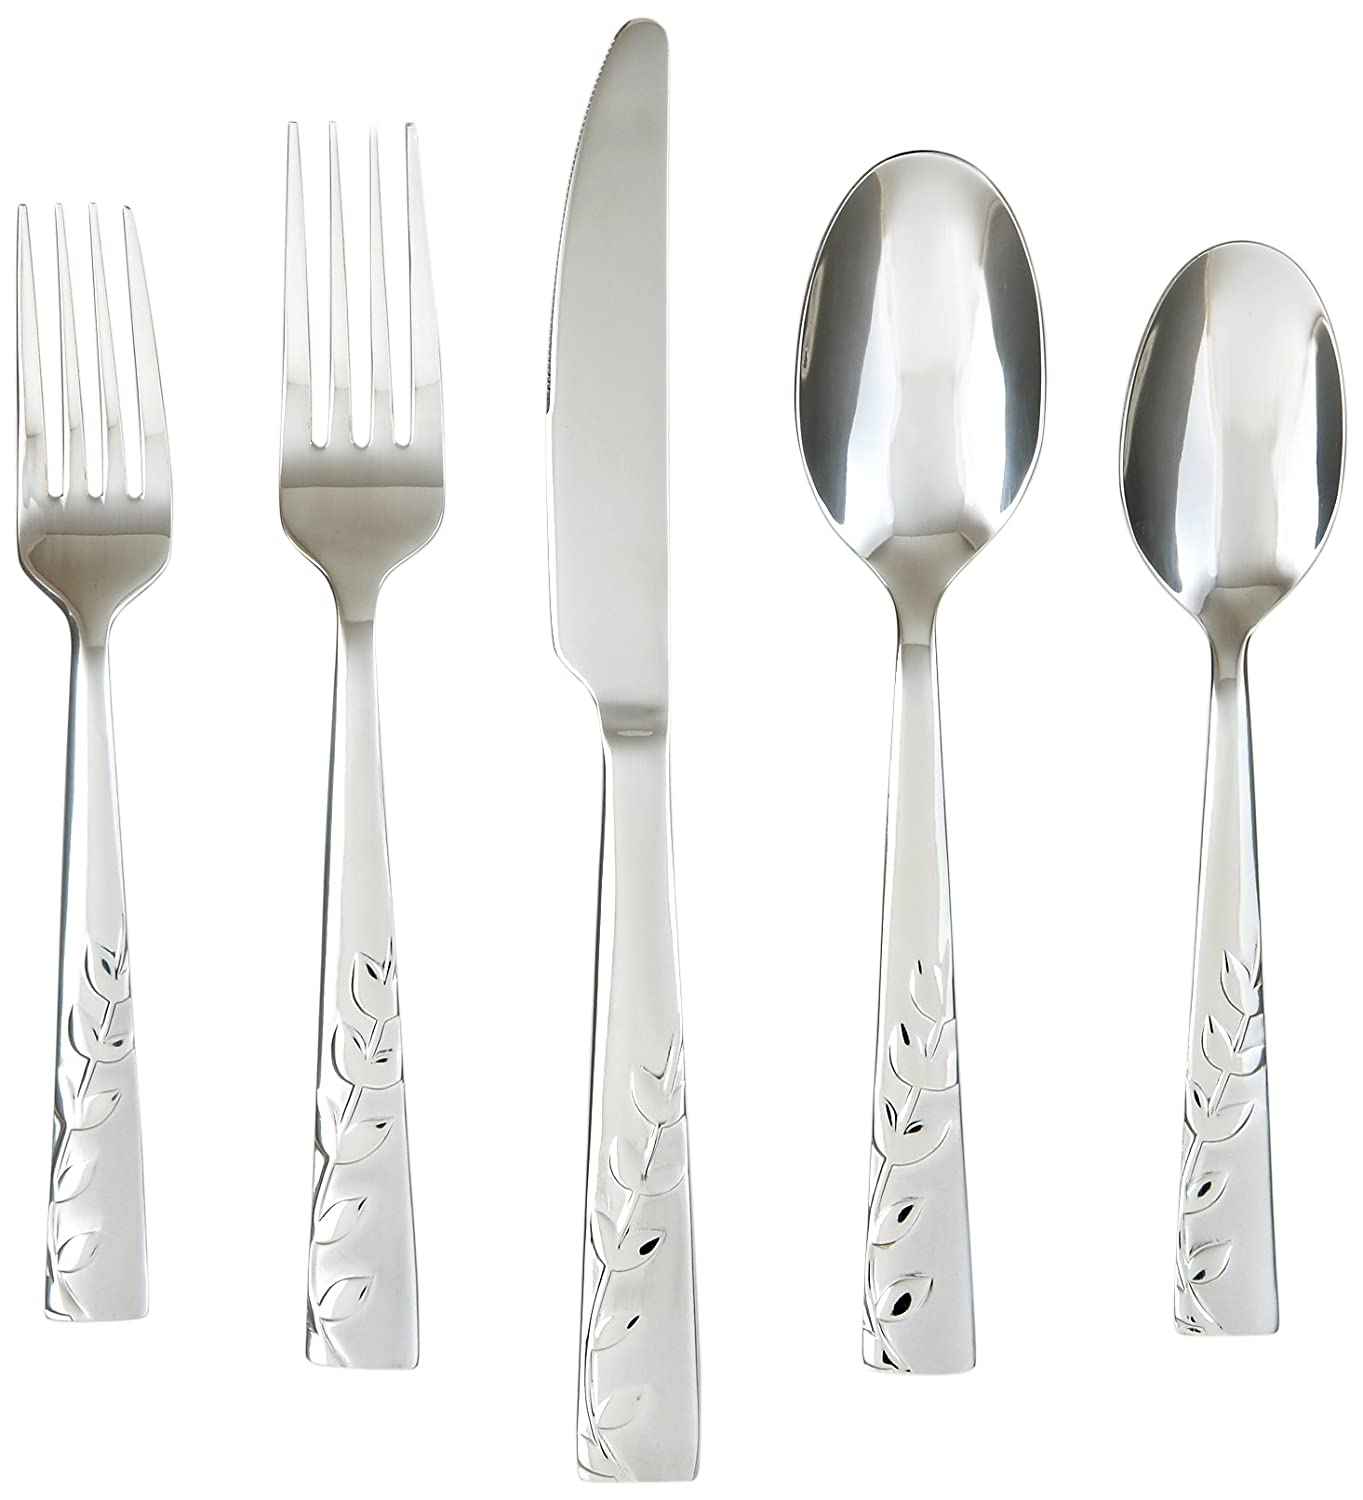 Amazon.com: Cambridge Silversmiths Blossom Sand 20-Piece Flatware Set, Service for 4 - Pack of 2: Kitchen & Dining